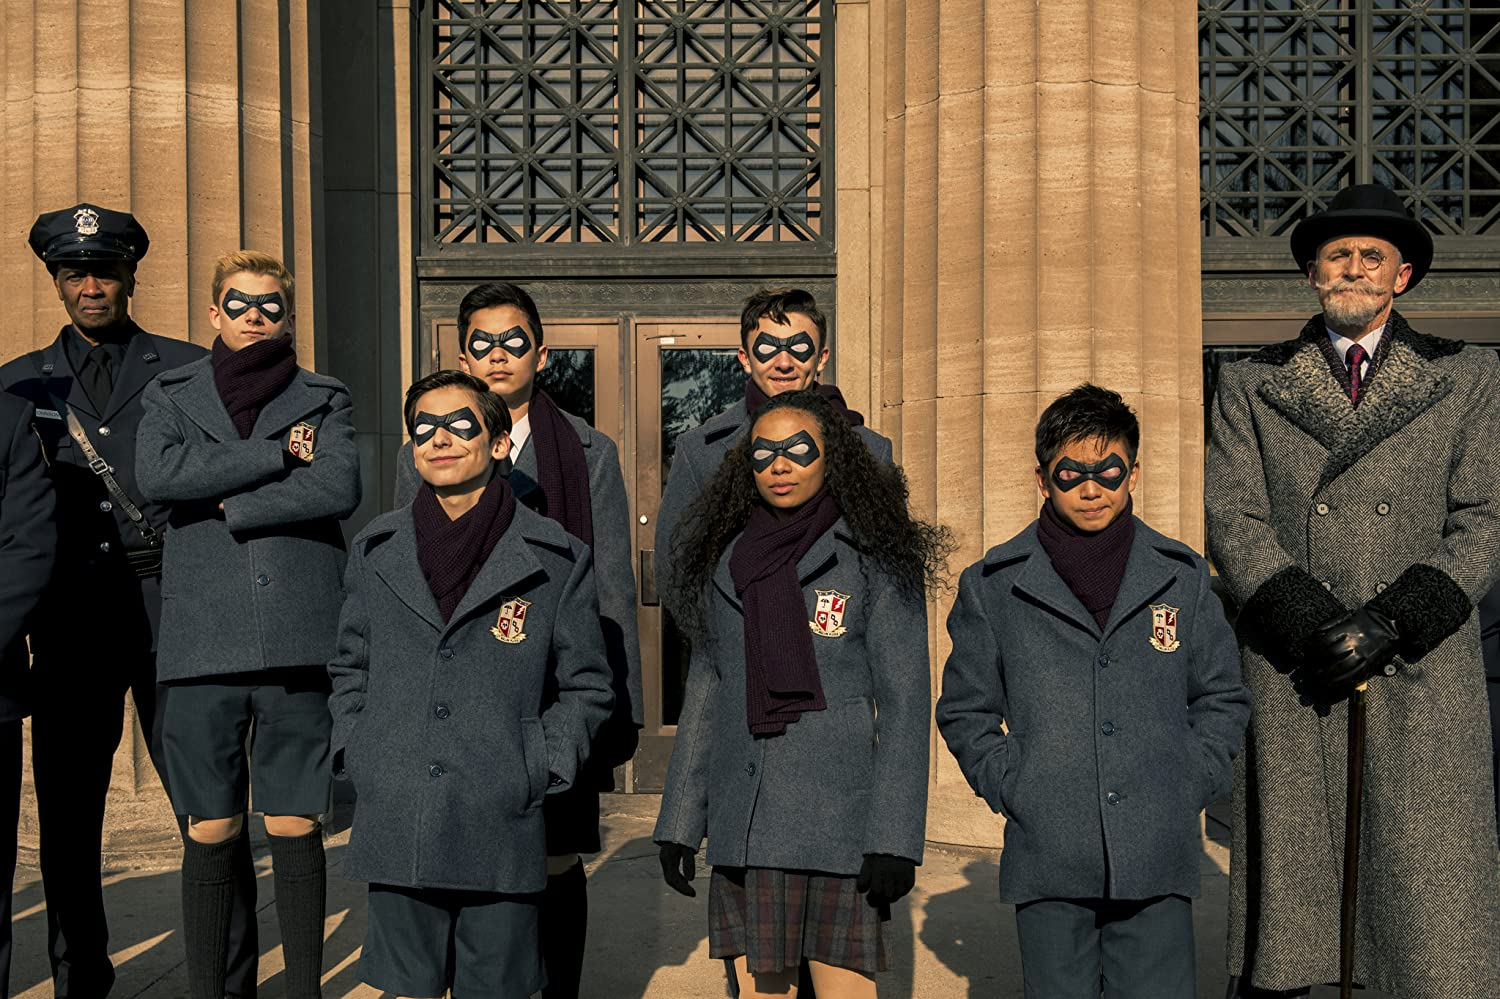 Colm Feore, Dante Albidone, Aidan Gallagher, Cameron Brodeur, Eden Cupid, Ethan Hwang, and Blake Talabis in The Umbrella Academy (2019)